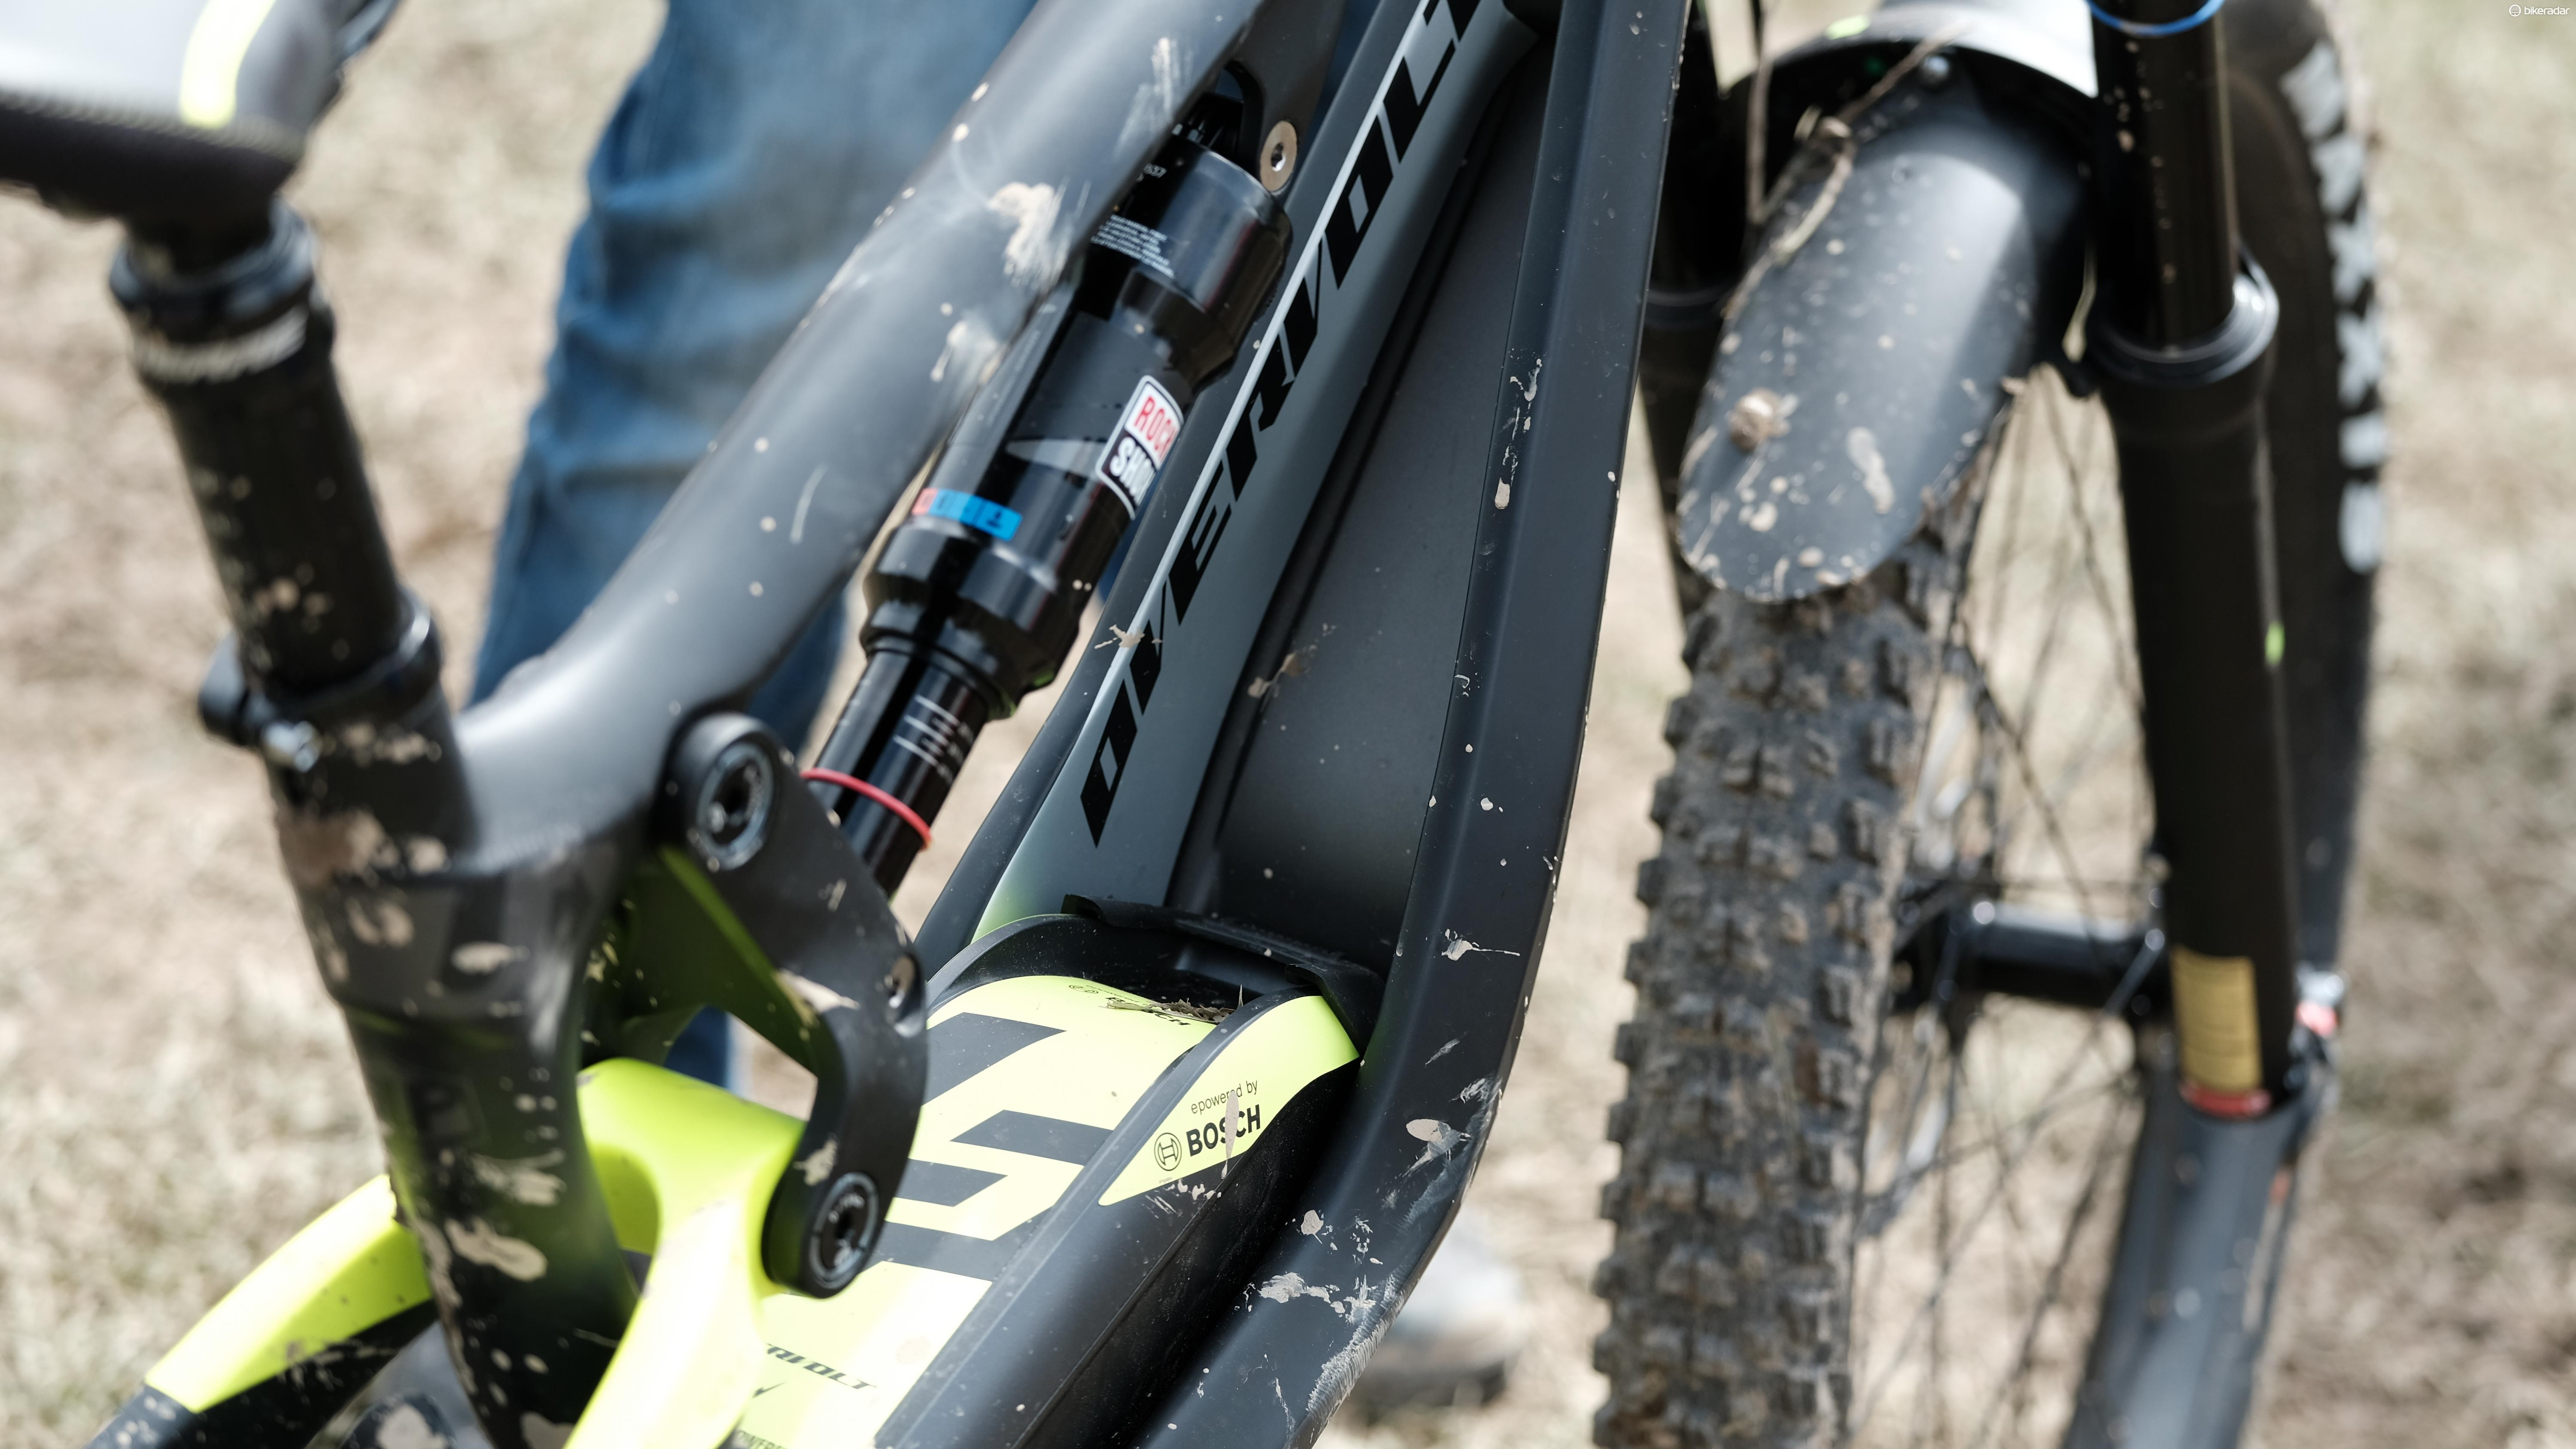 While the battery is currently supplied by Bosch, we wonder what that interesting shaped down tube has been designed to accommodate?